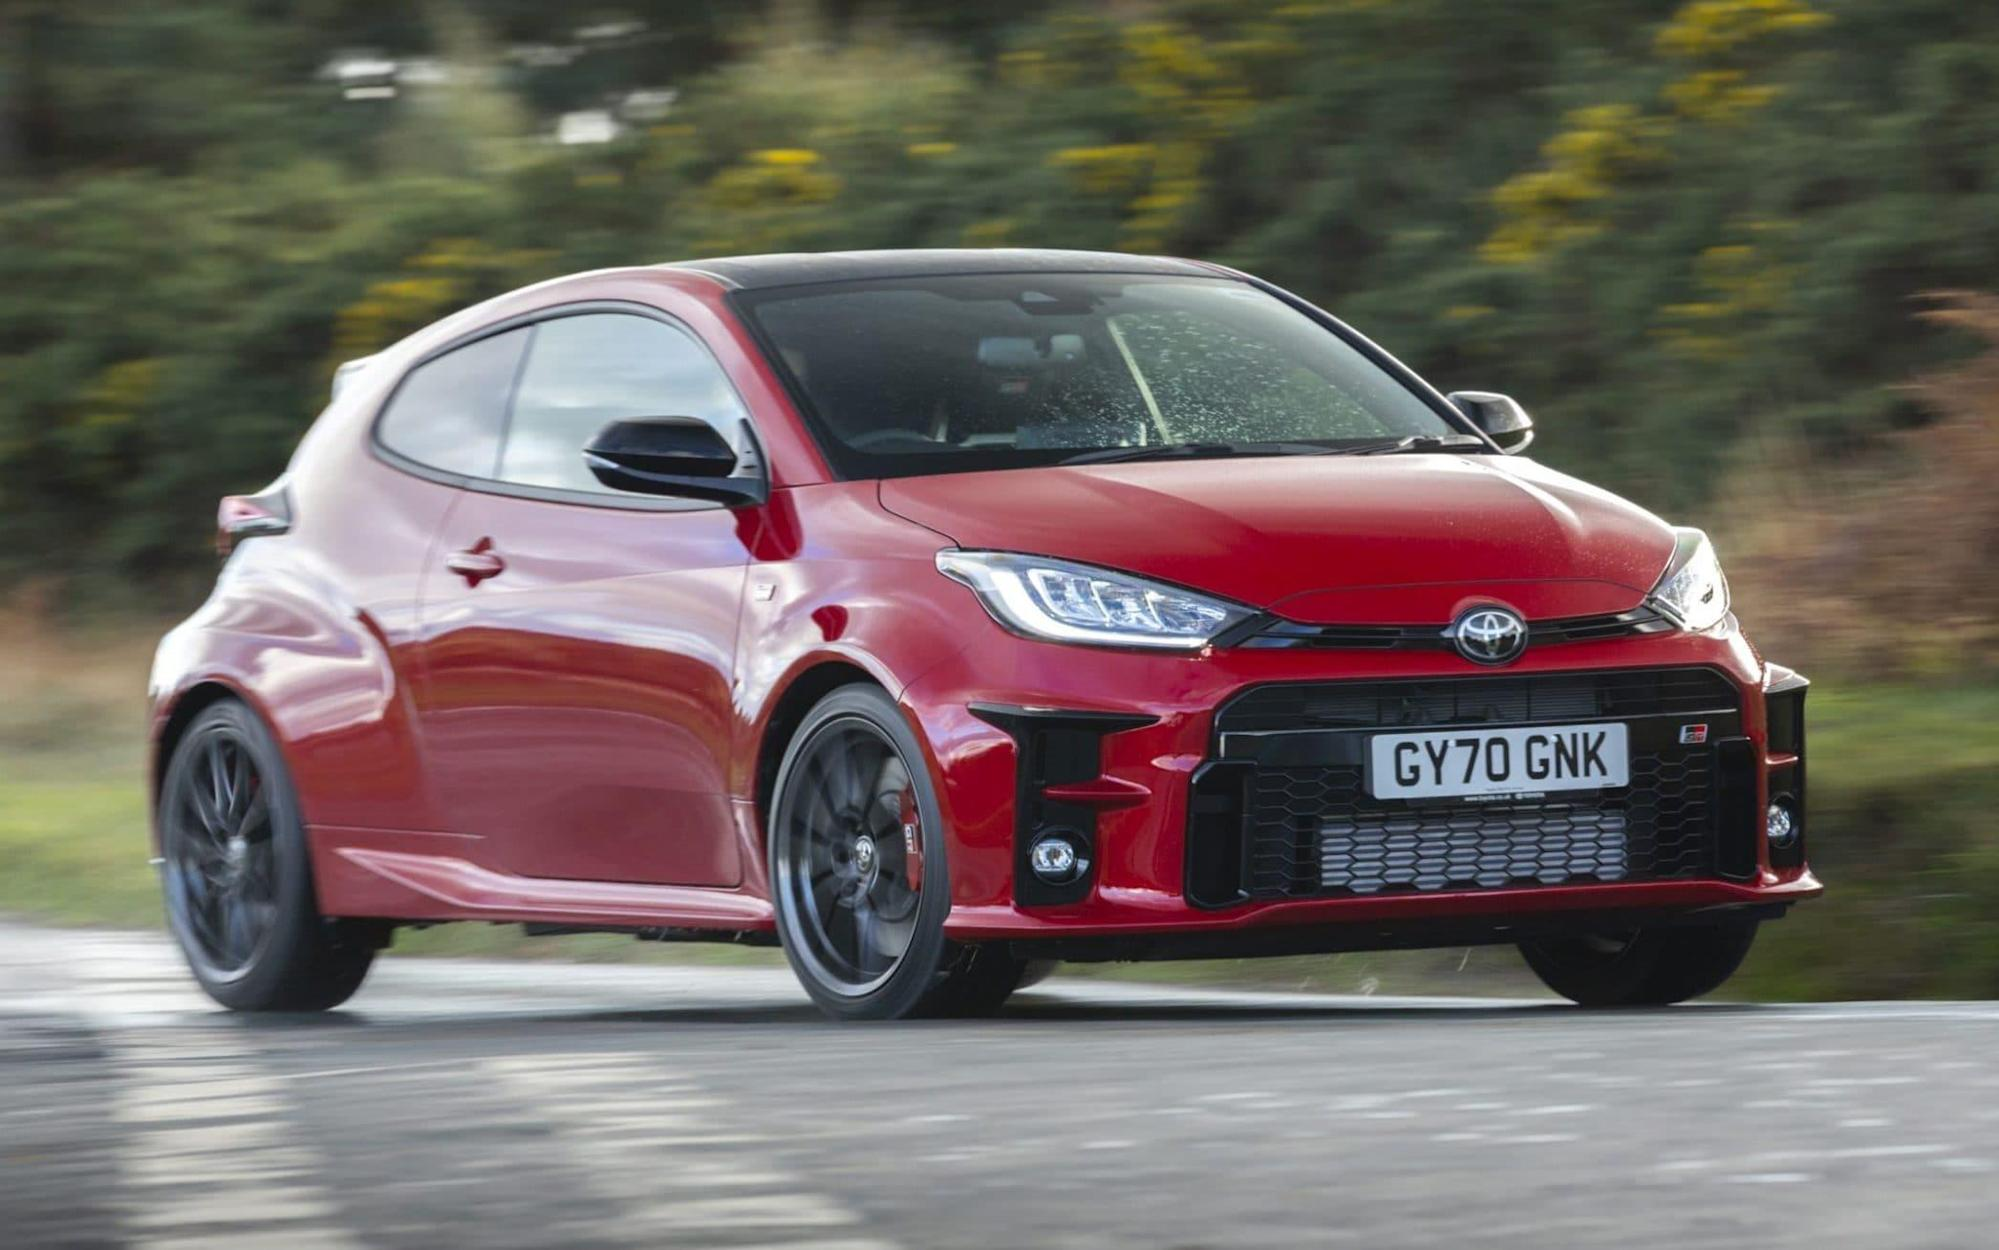 Toyota GR Yaris review: this sensational special project takes the hot hatchback crown